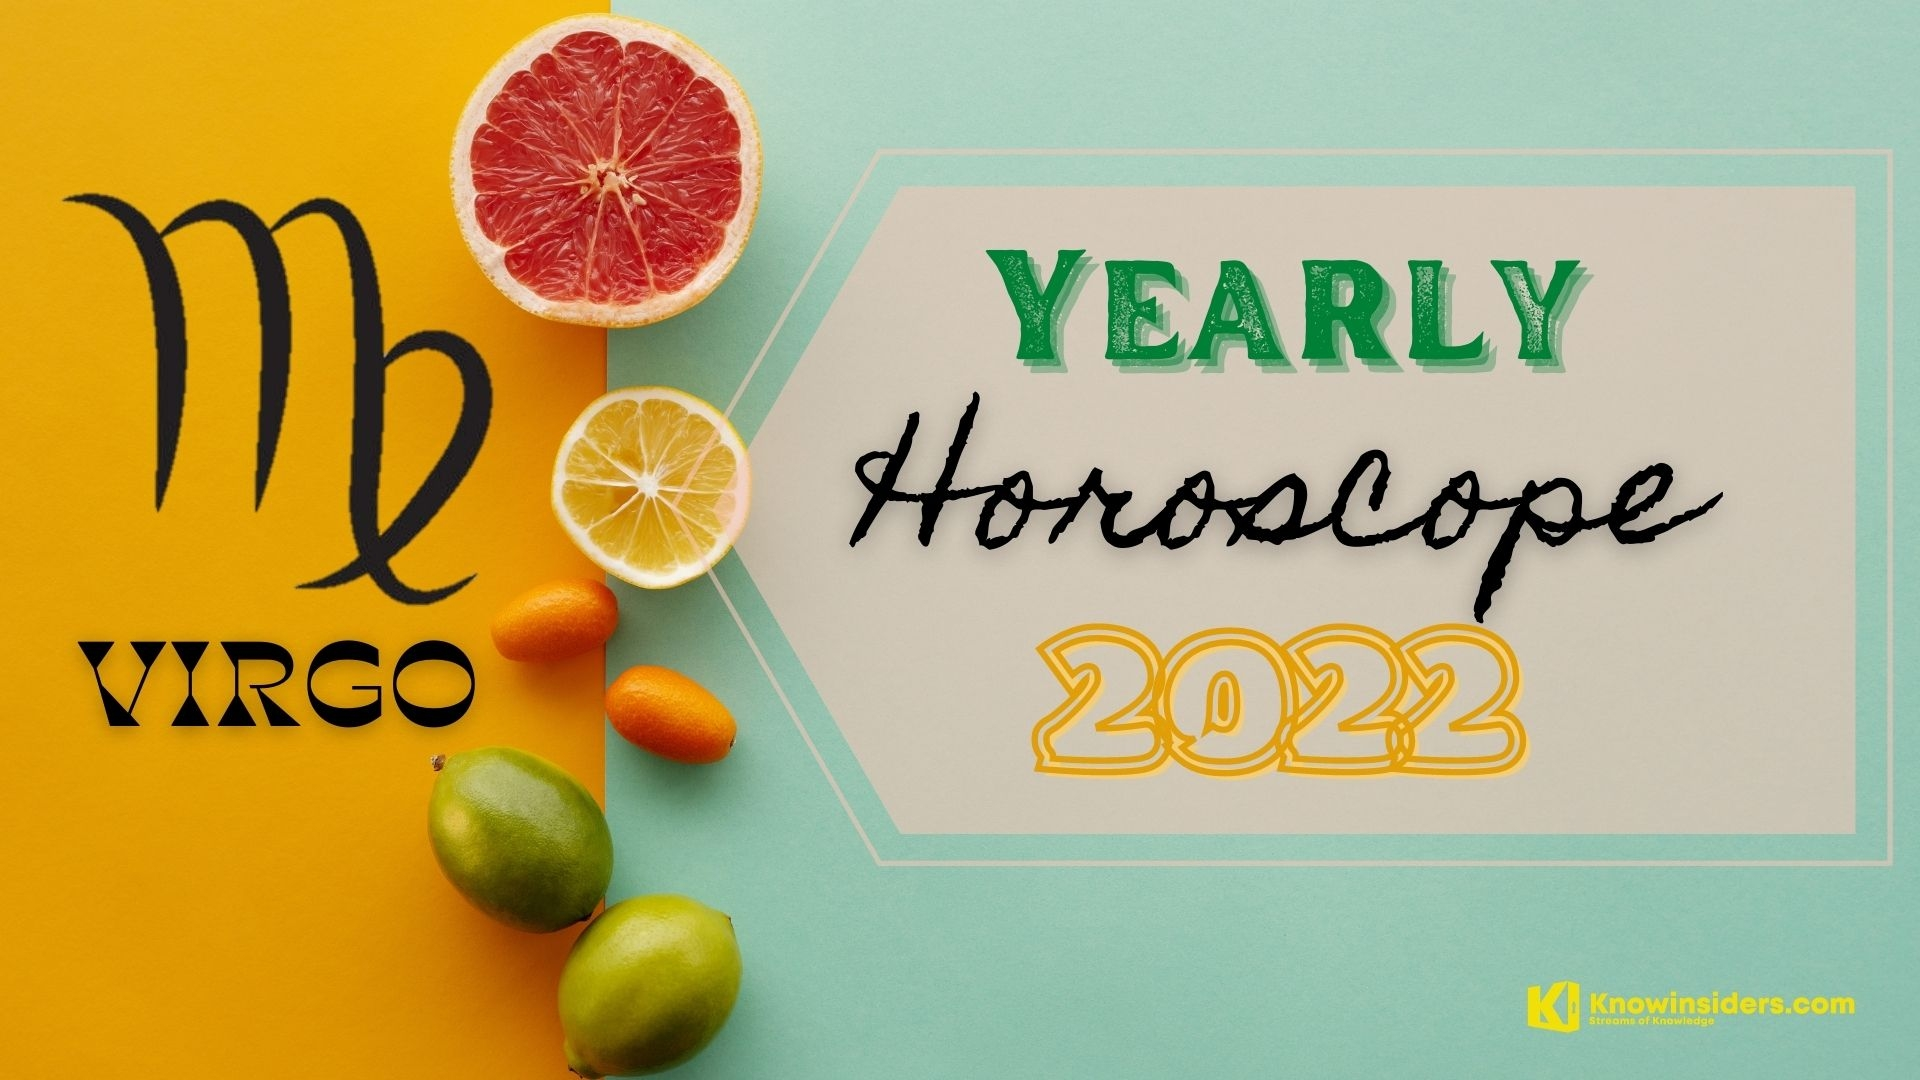 VIRGO Yearly Horoscope 2022: Prediction for Health, Travel and Education